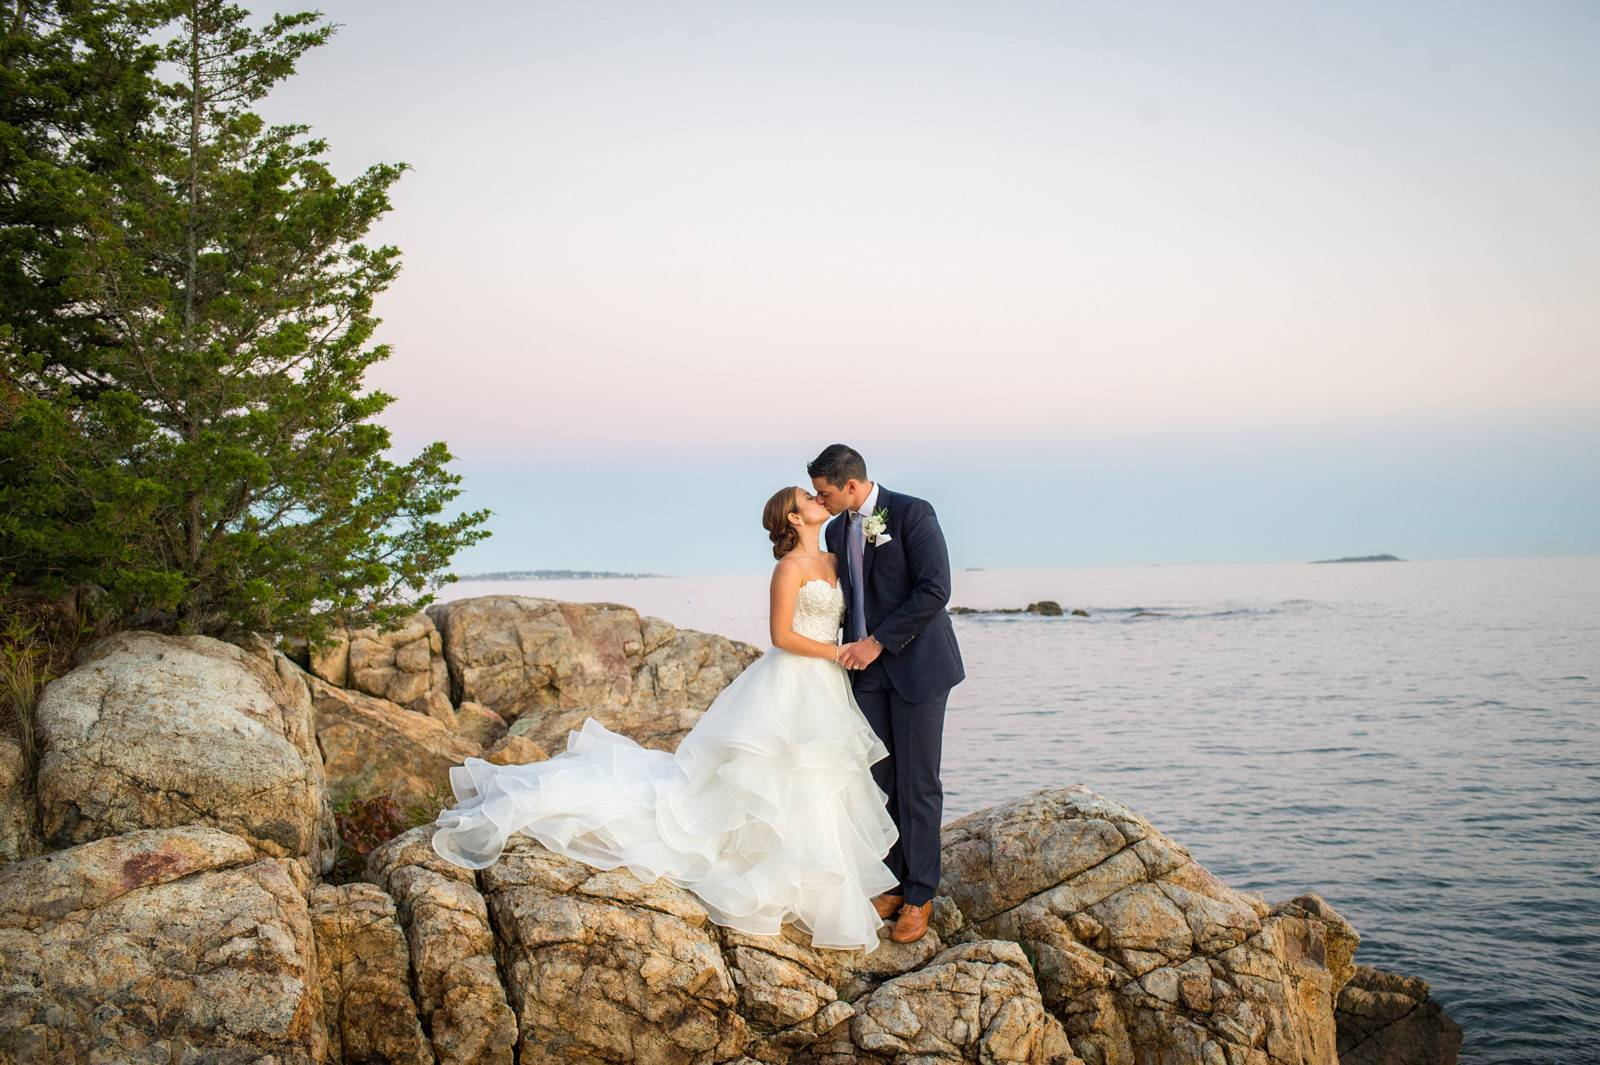 Bride and groom kissing on rock ledge at the lake on wedding day